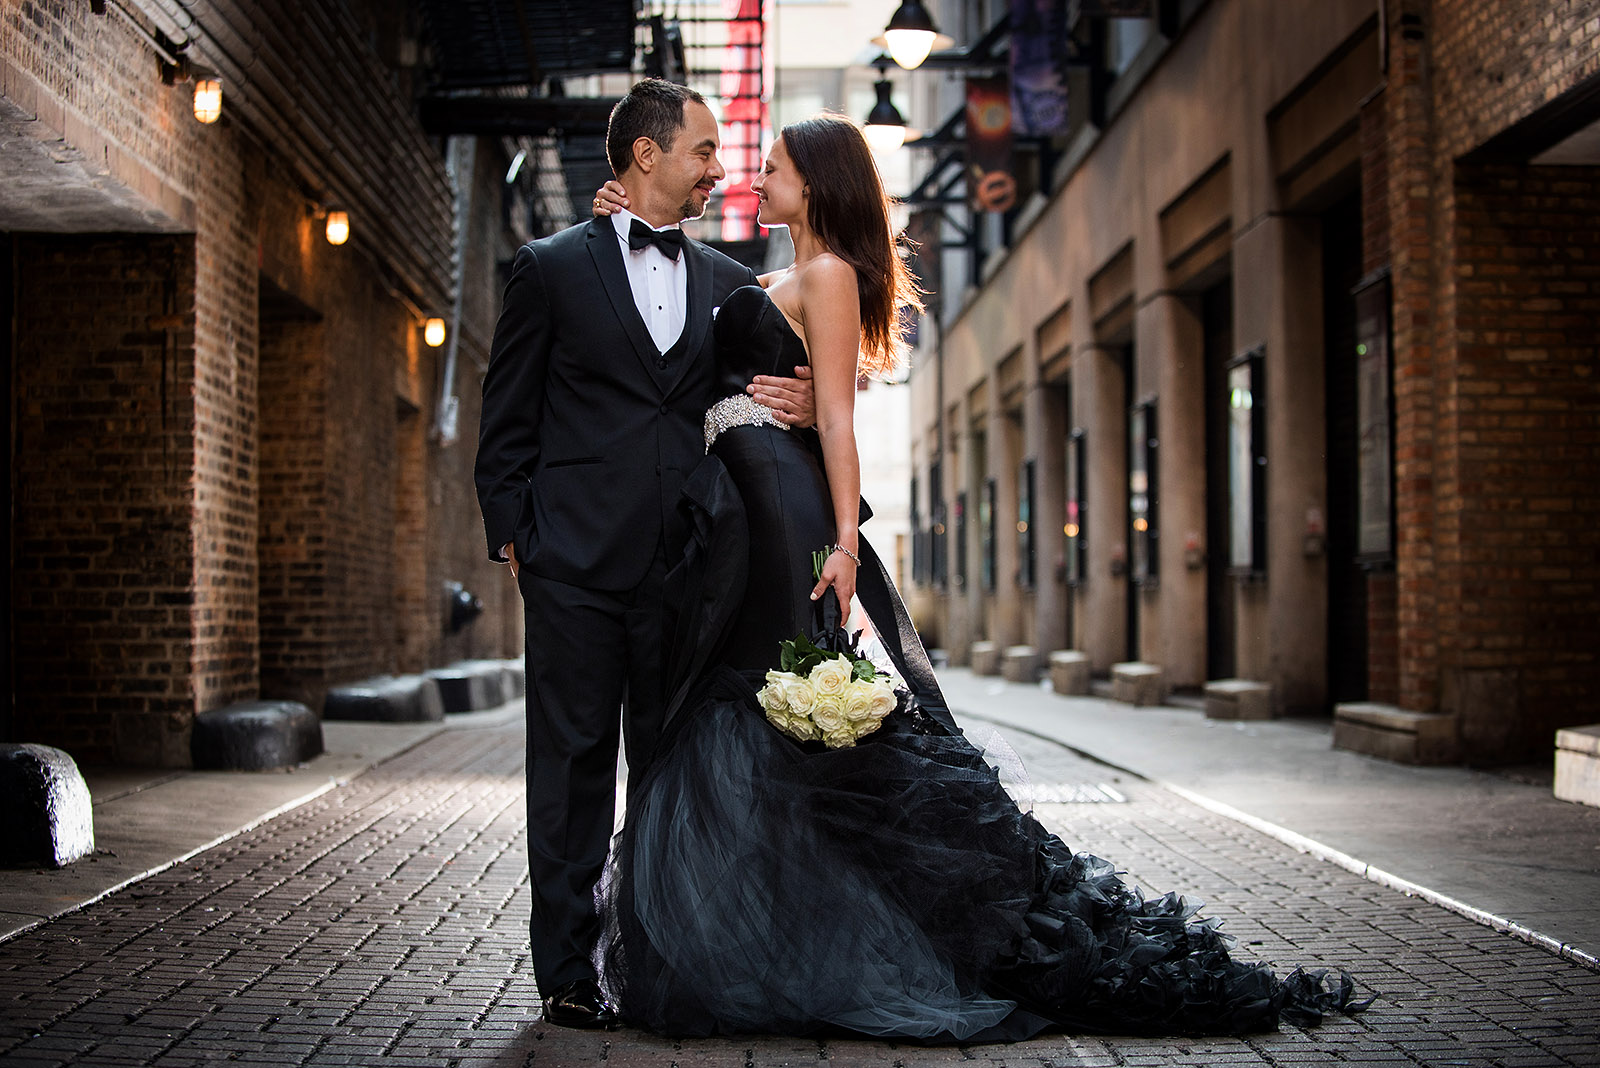 Black Wedding Gown Bride Groom